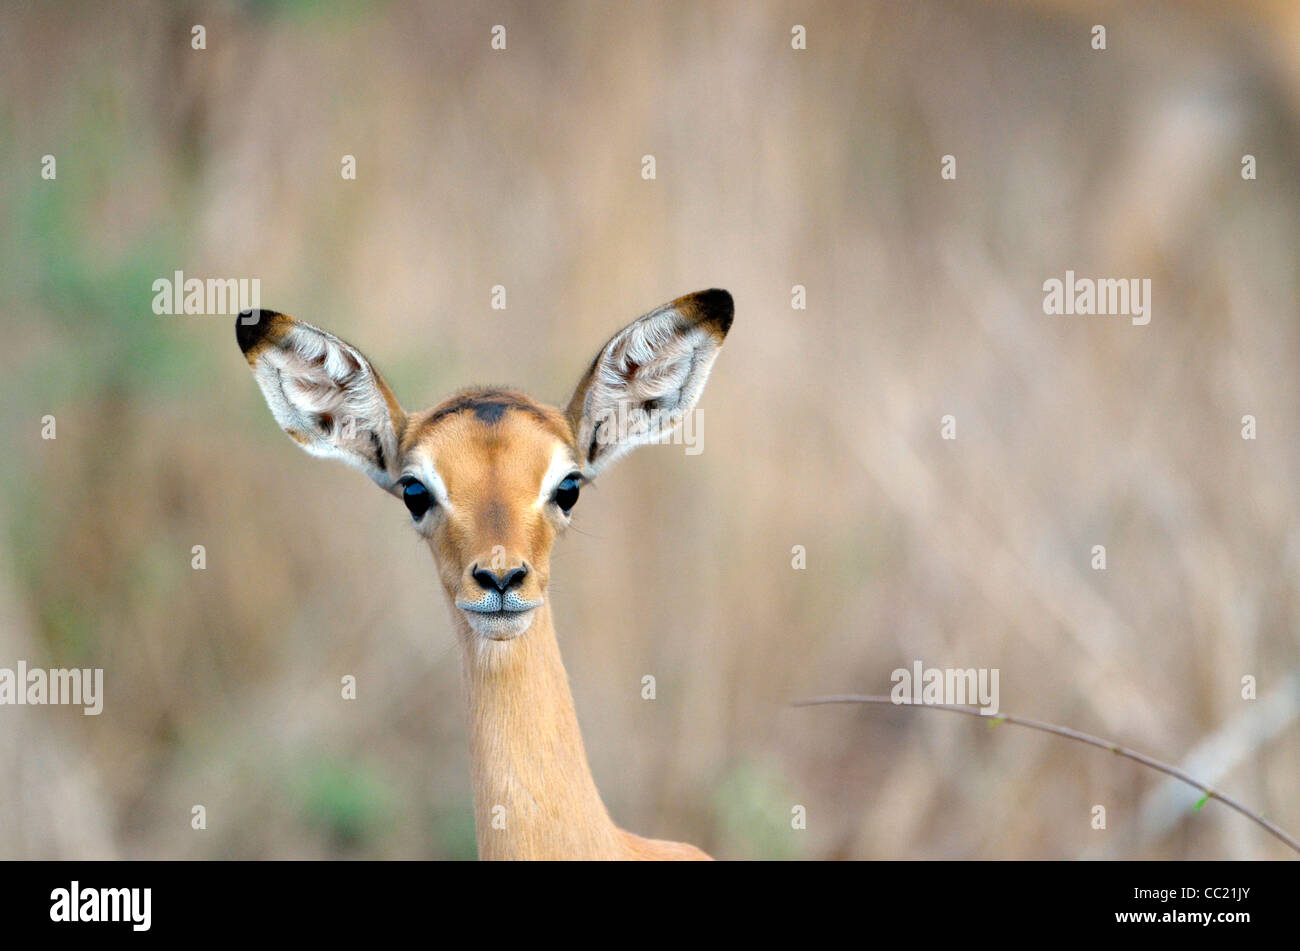 Kruger national Park in South Africa is world famous for do-it-yourself game viewing at affordable rates. Baby impala - Stock Image